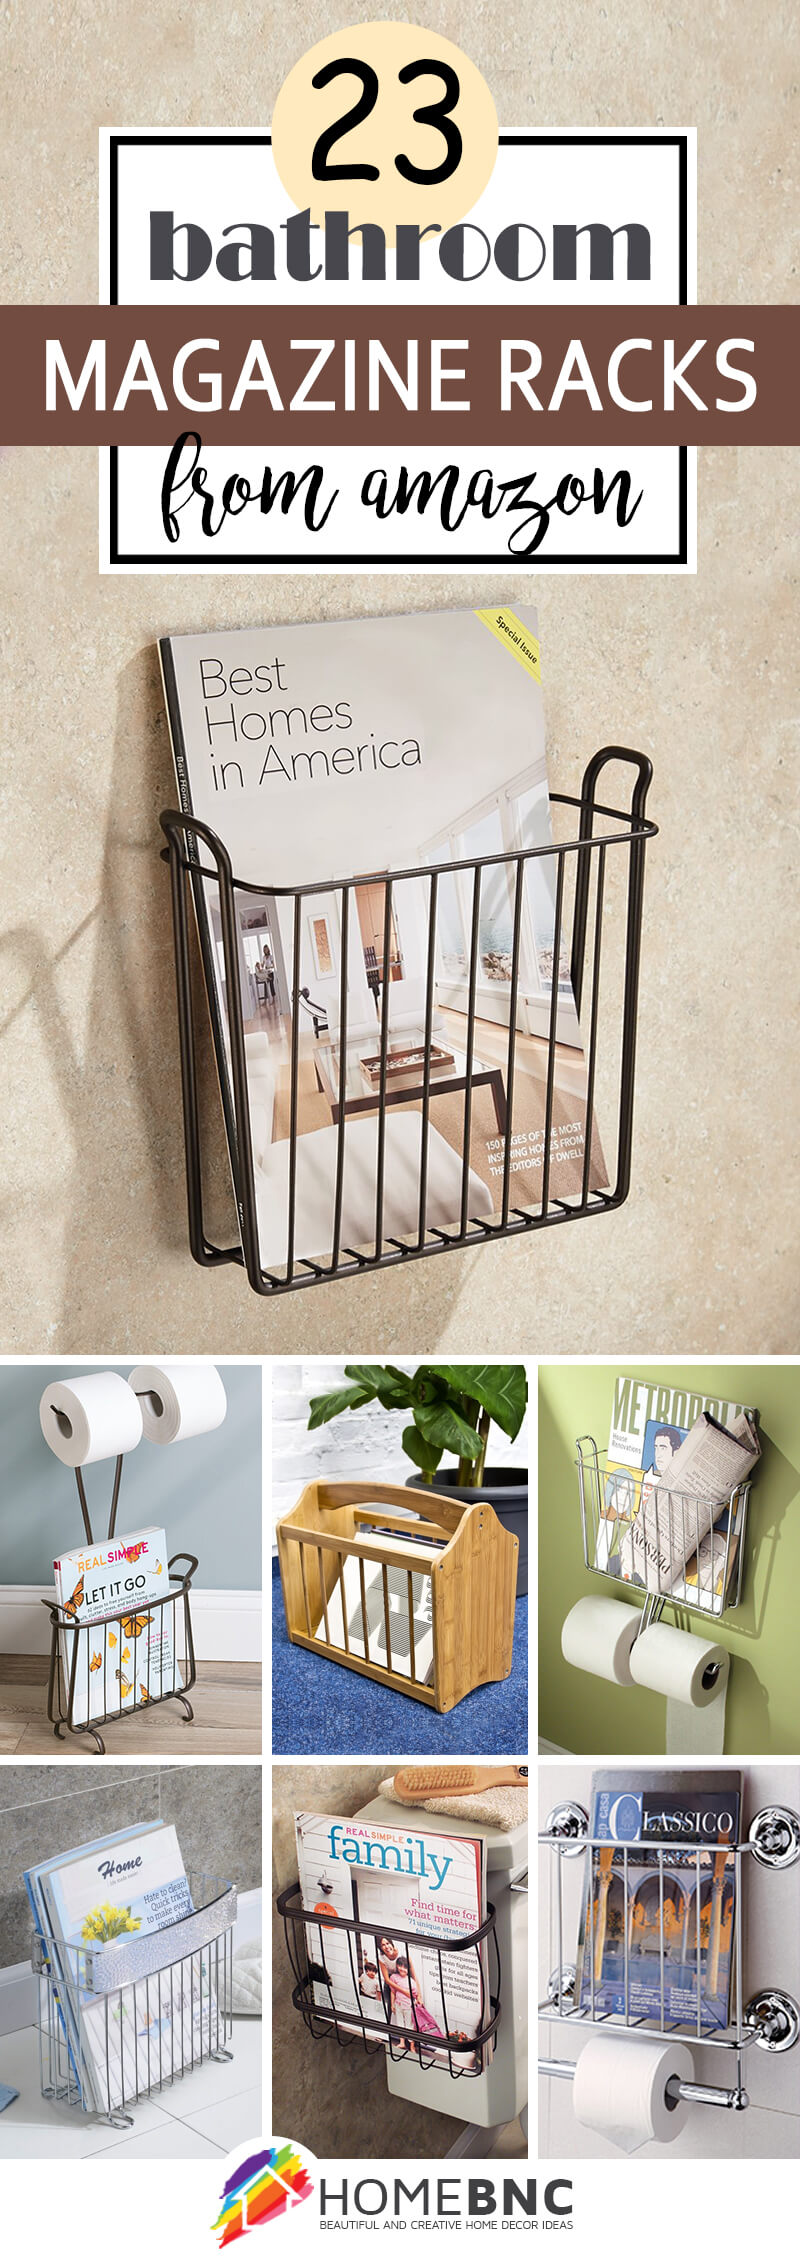 Bathroom Magazine Rack Ideas